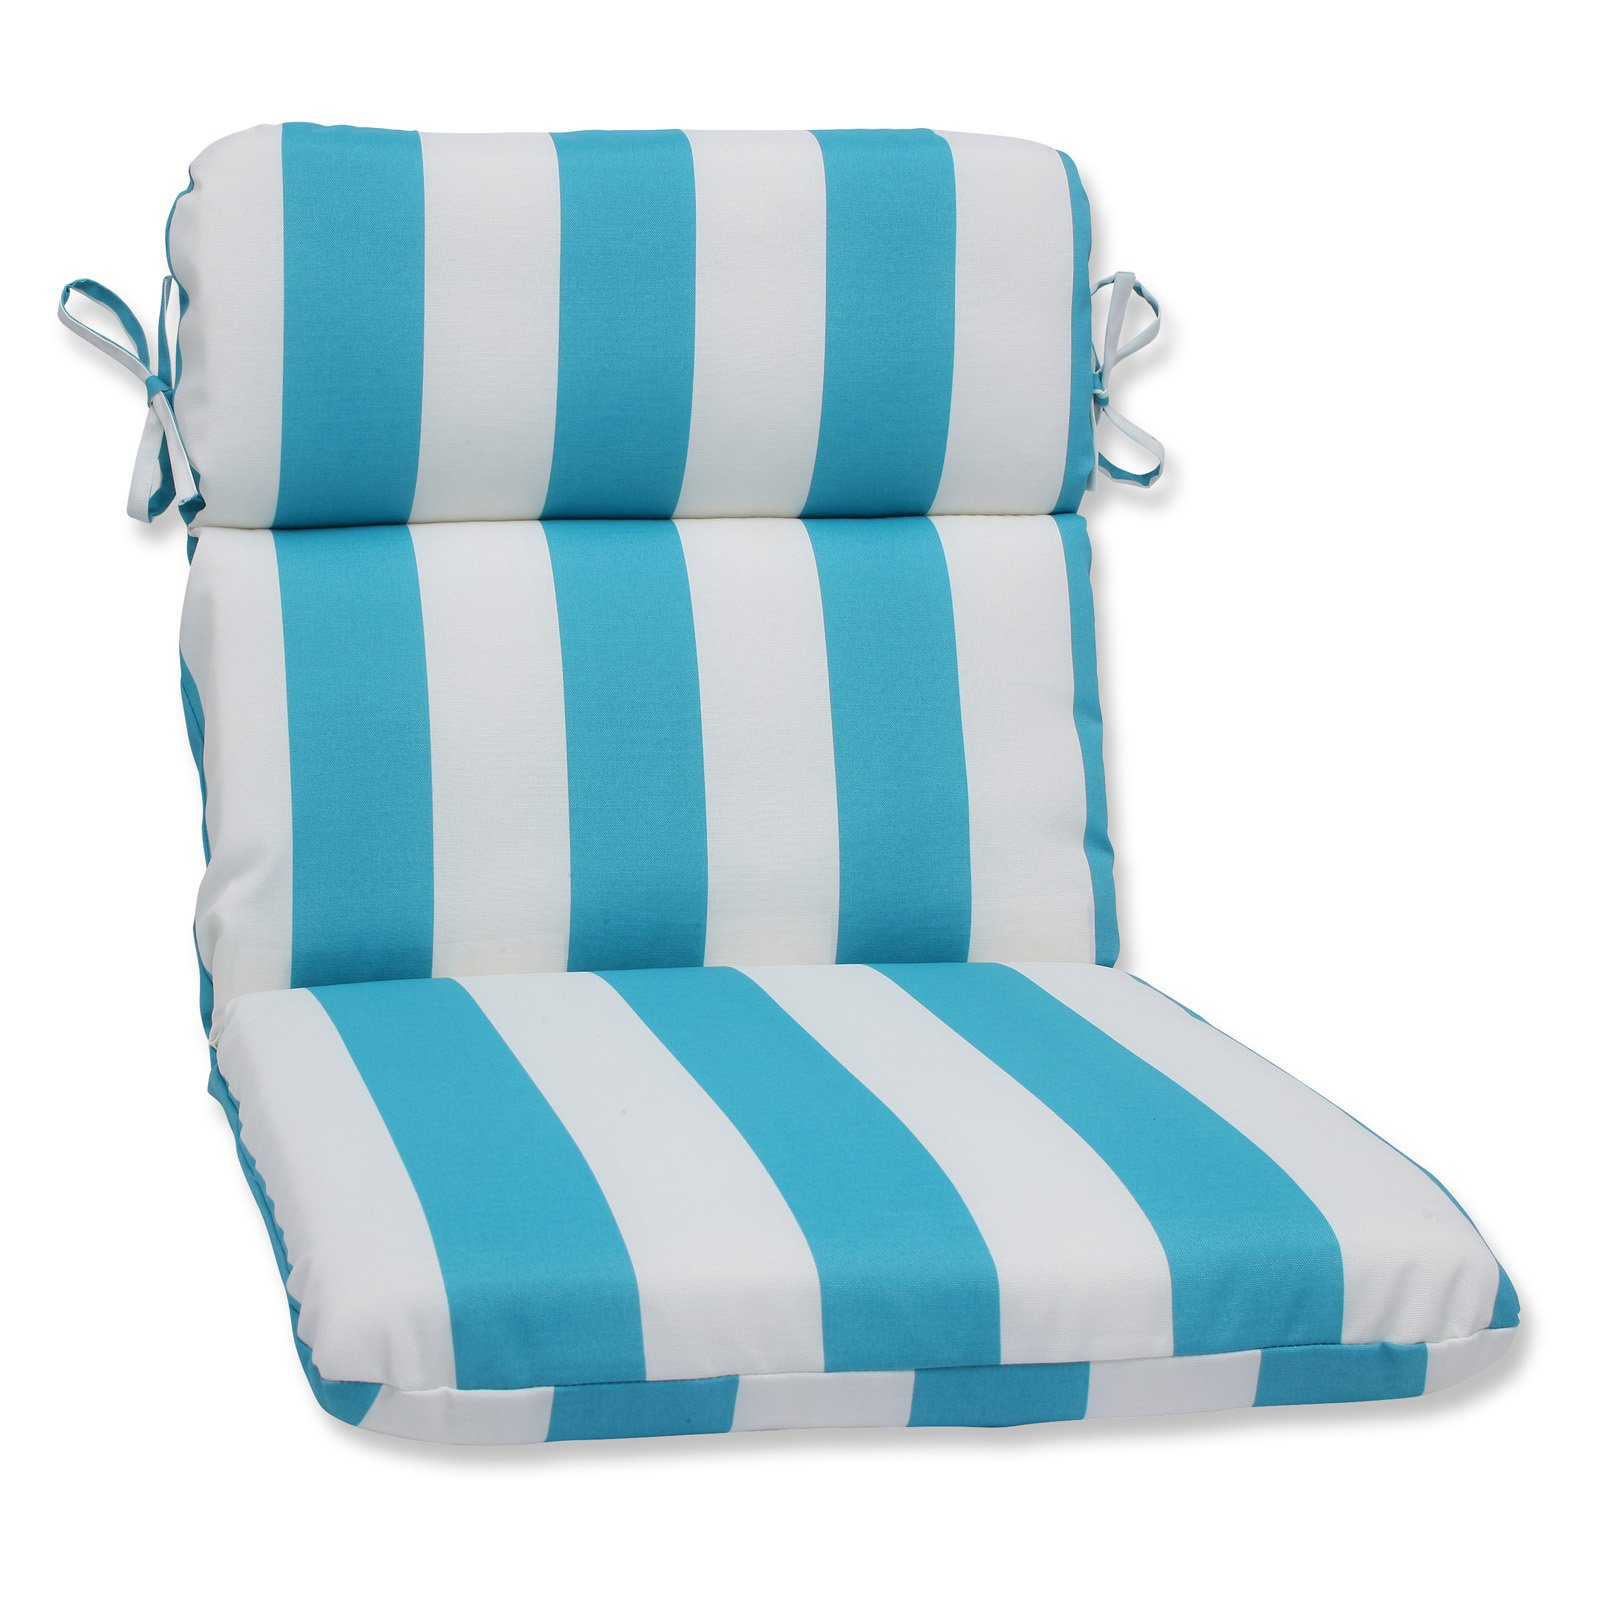 Pillow Perfect Outdoor/ Indoor Cabana Stripe Turquoise Rounded Corners Chair Cushion